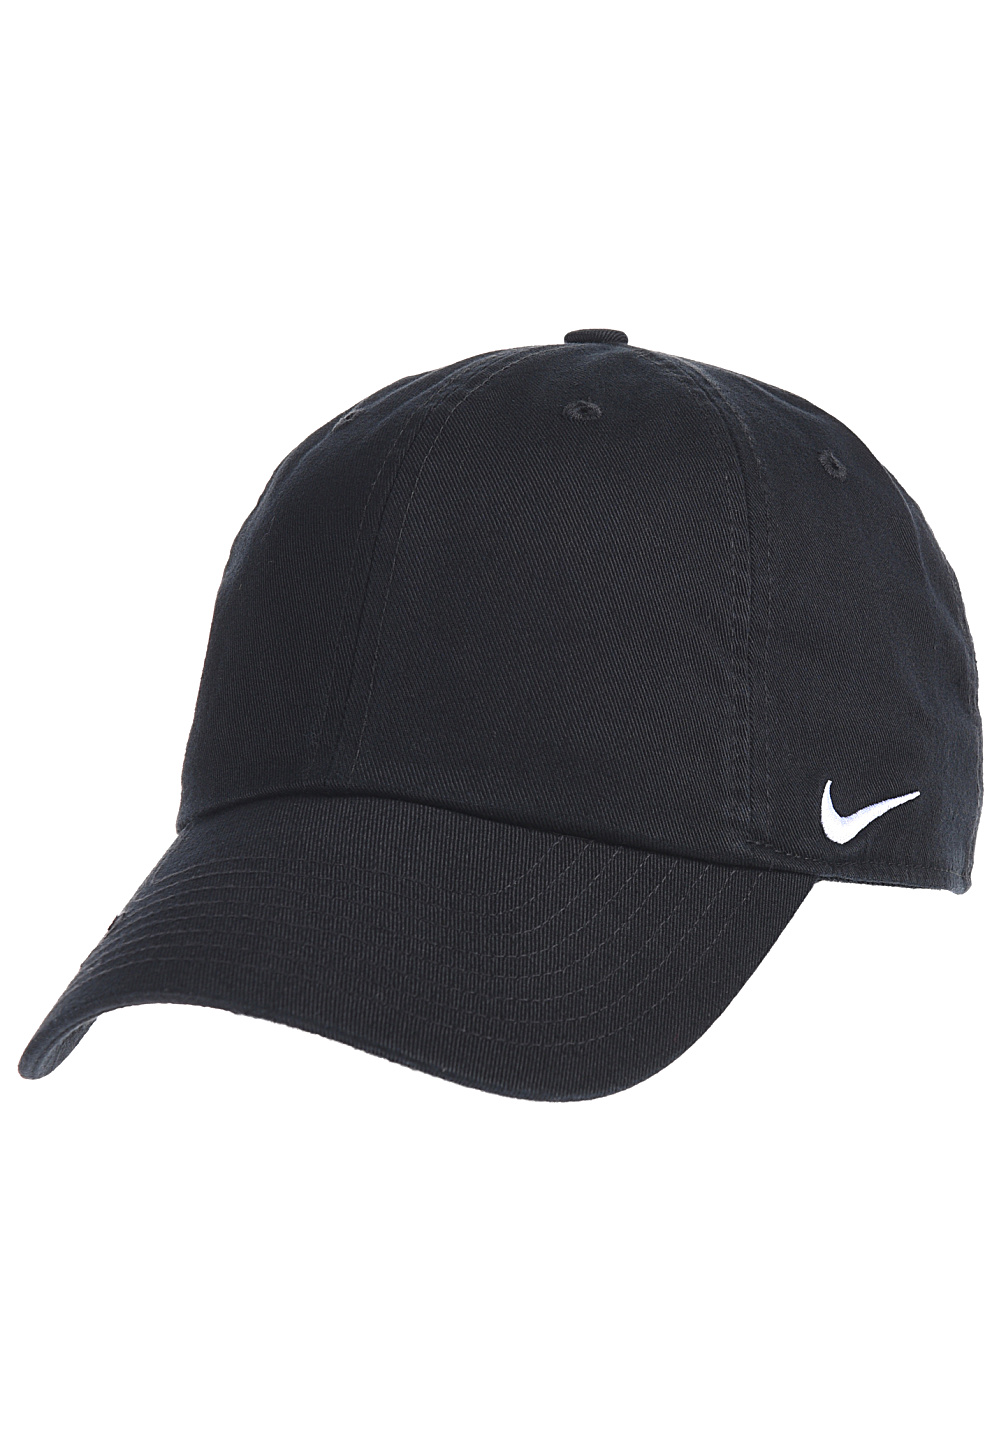 5ae64f6a026 Next. This product is currently out of stock. NIKE SPORTSWEAR. Heritage 86  - Snapback Cap